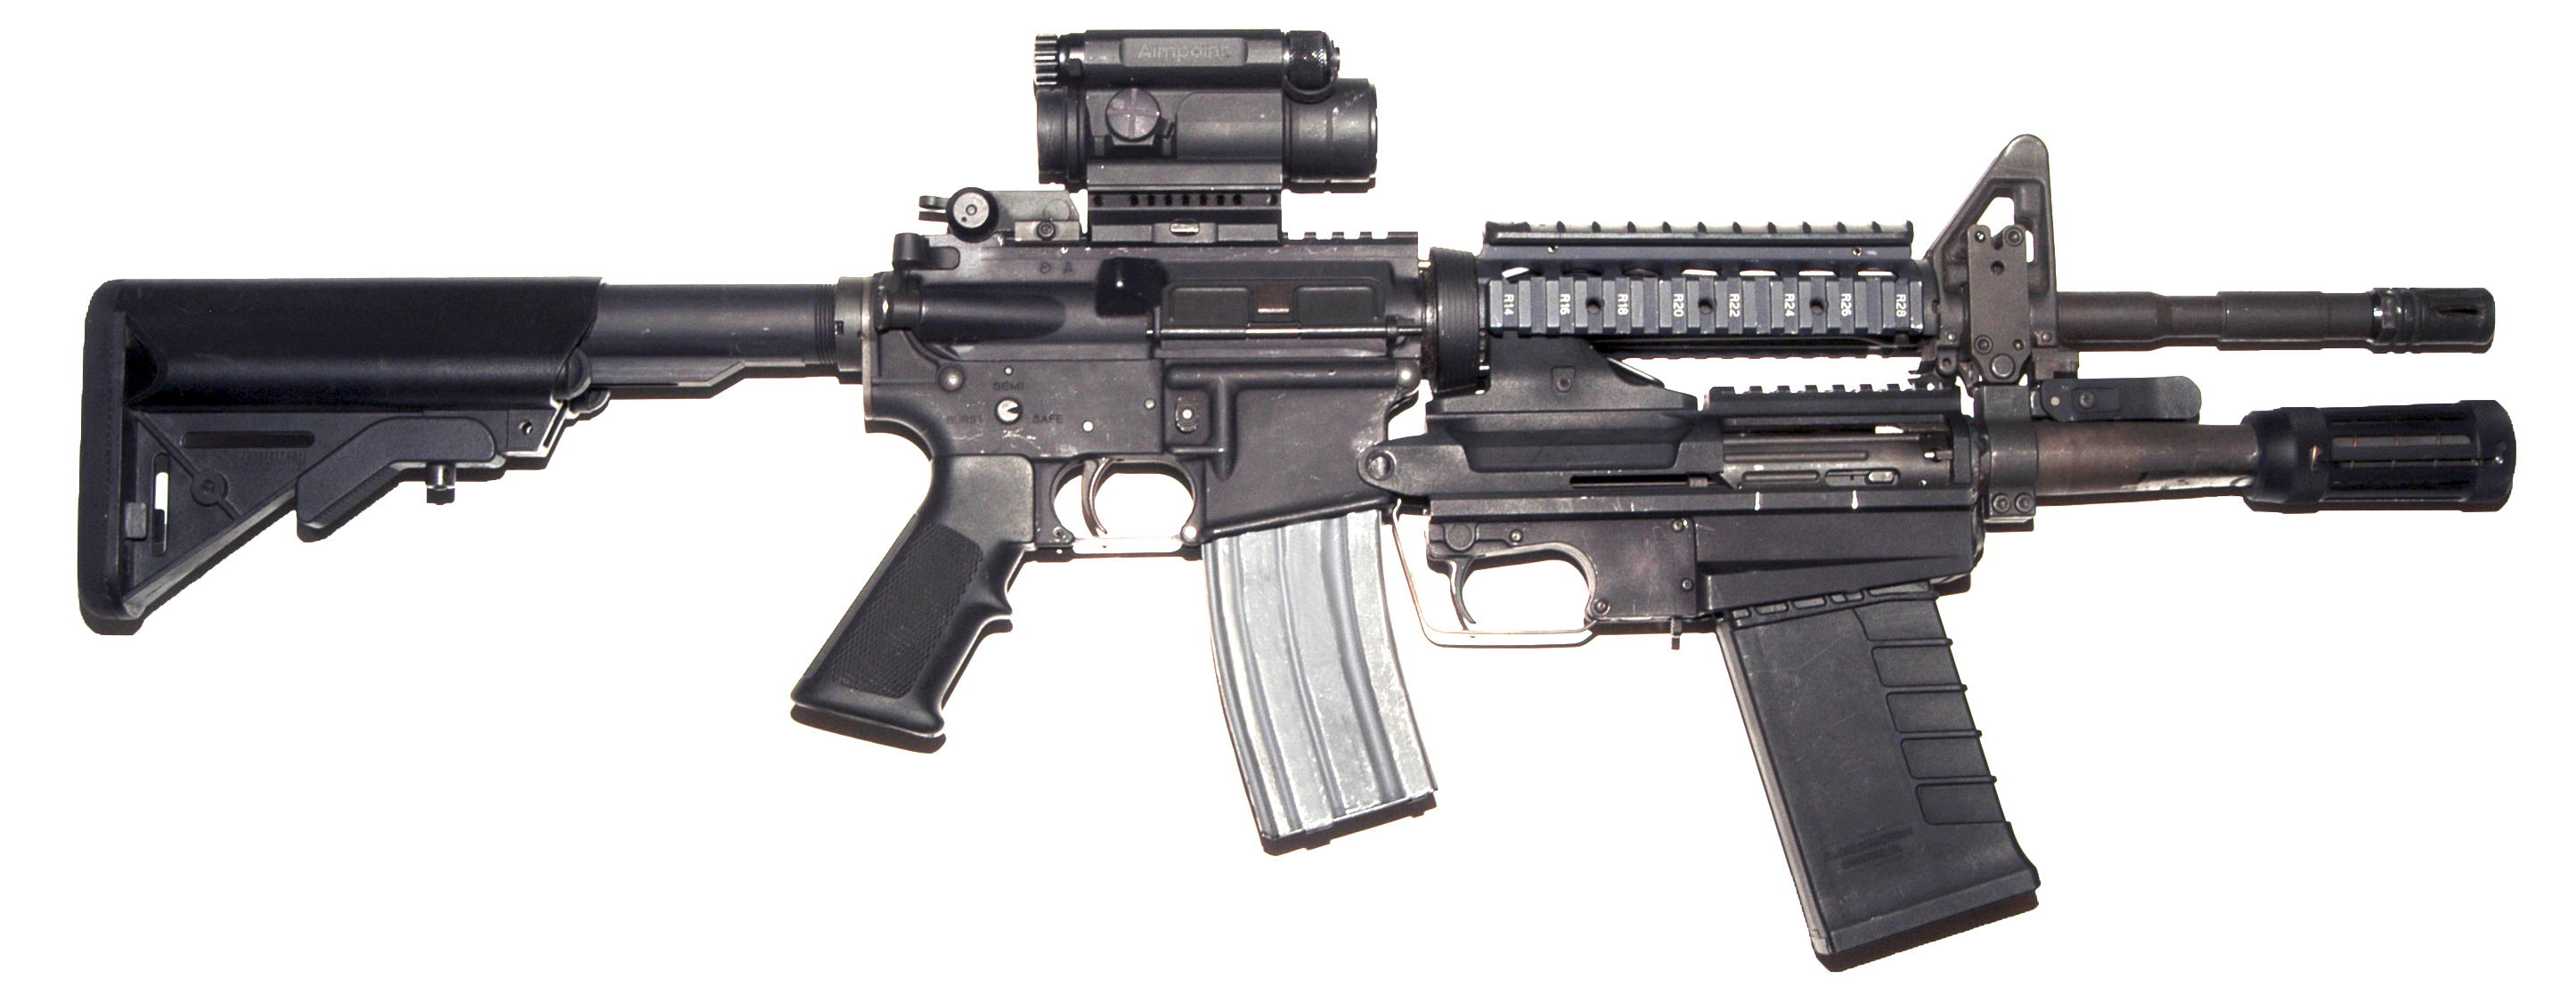 PEO_M26_MASS_on_M4_Carbine.jpg